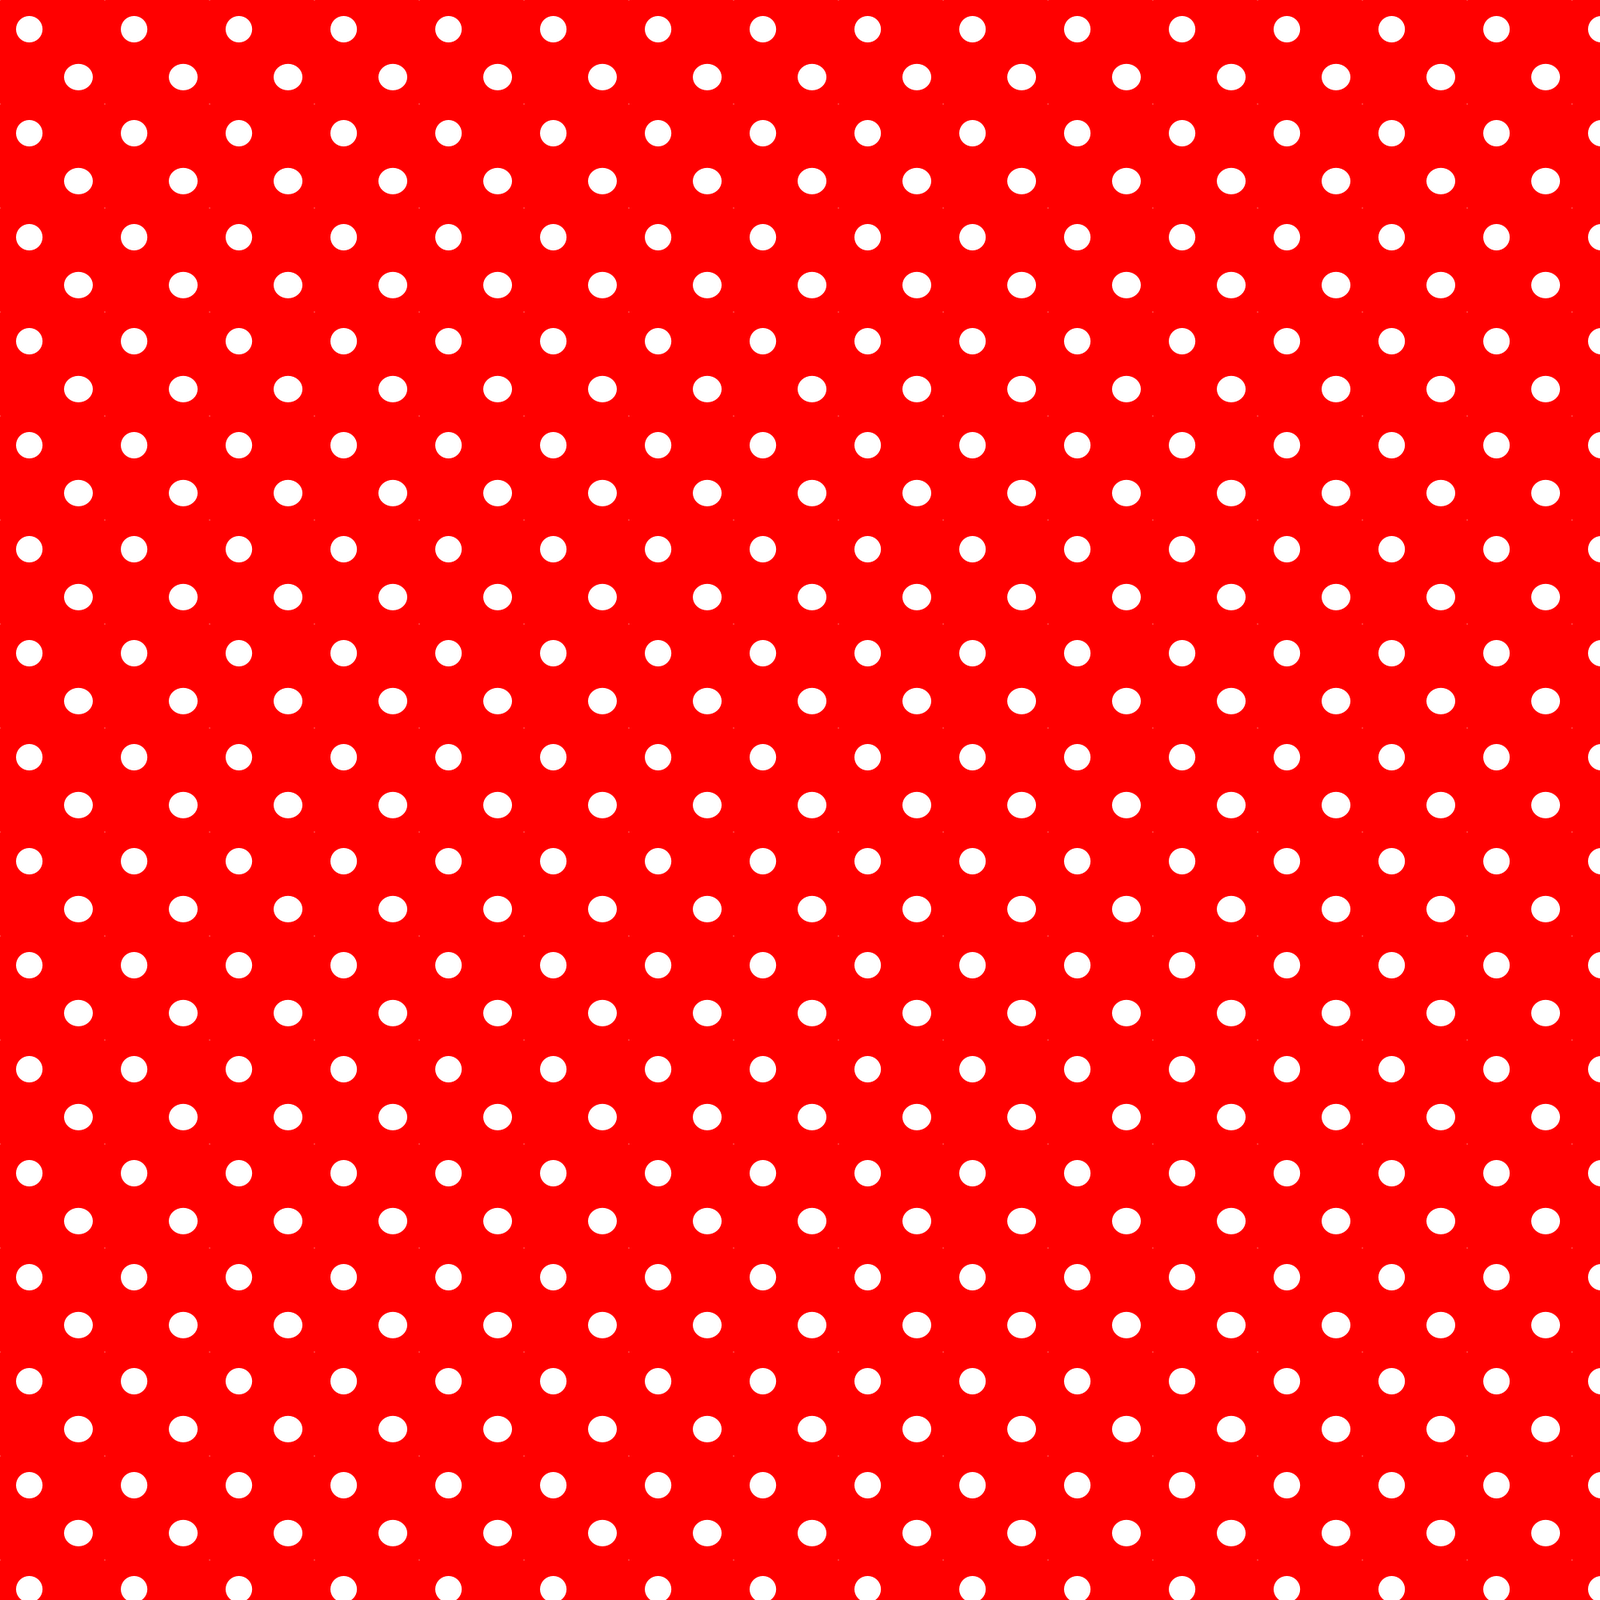 Red And White Polka Dot Wallpaper 2